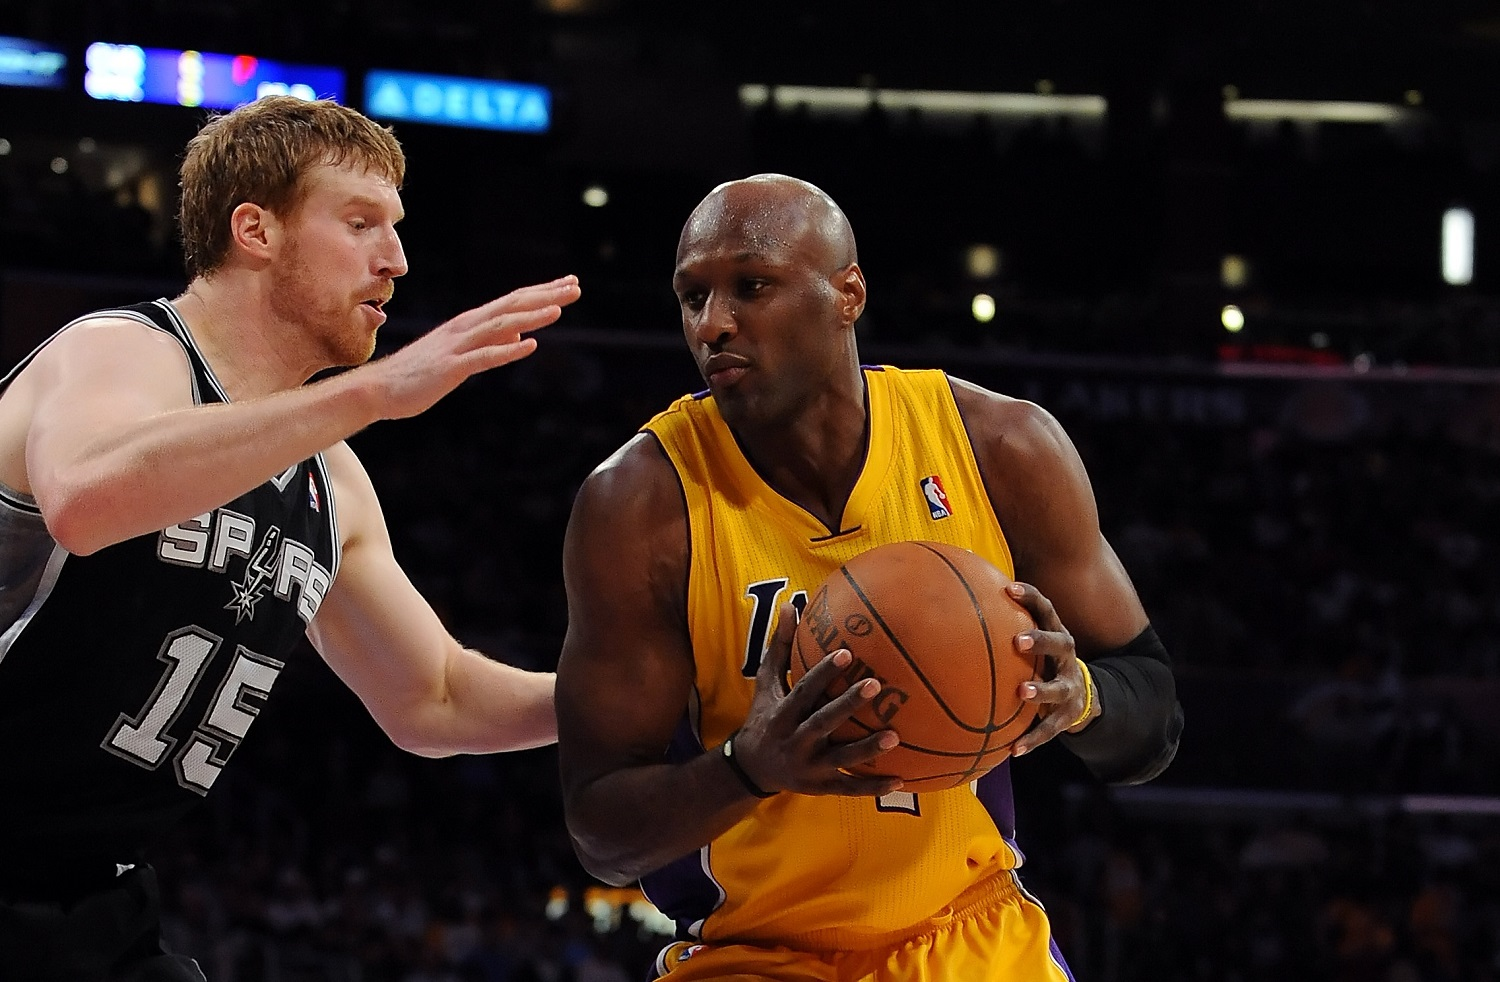 Lamar Odom Wanted to Warn an NBA Owner: 'Don't Ever Do That to a Black Man Again'